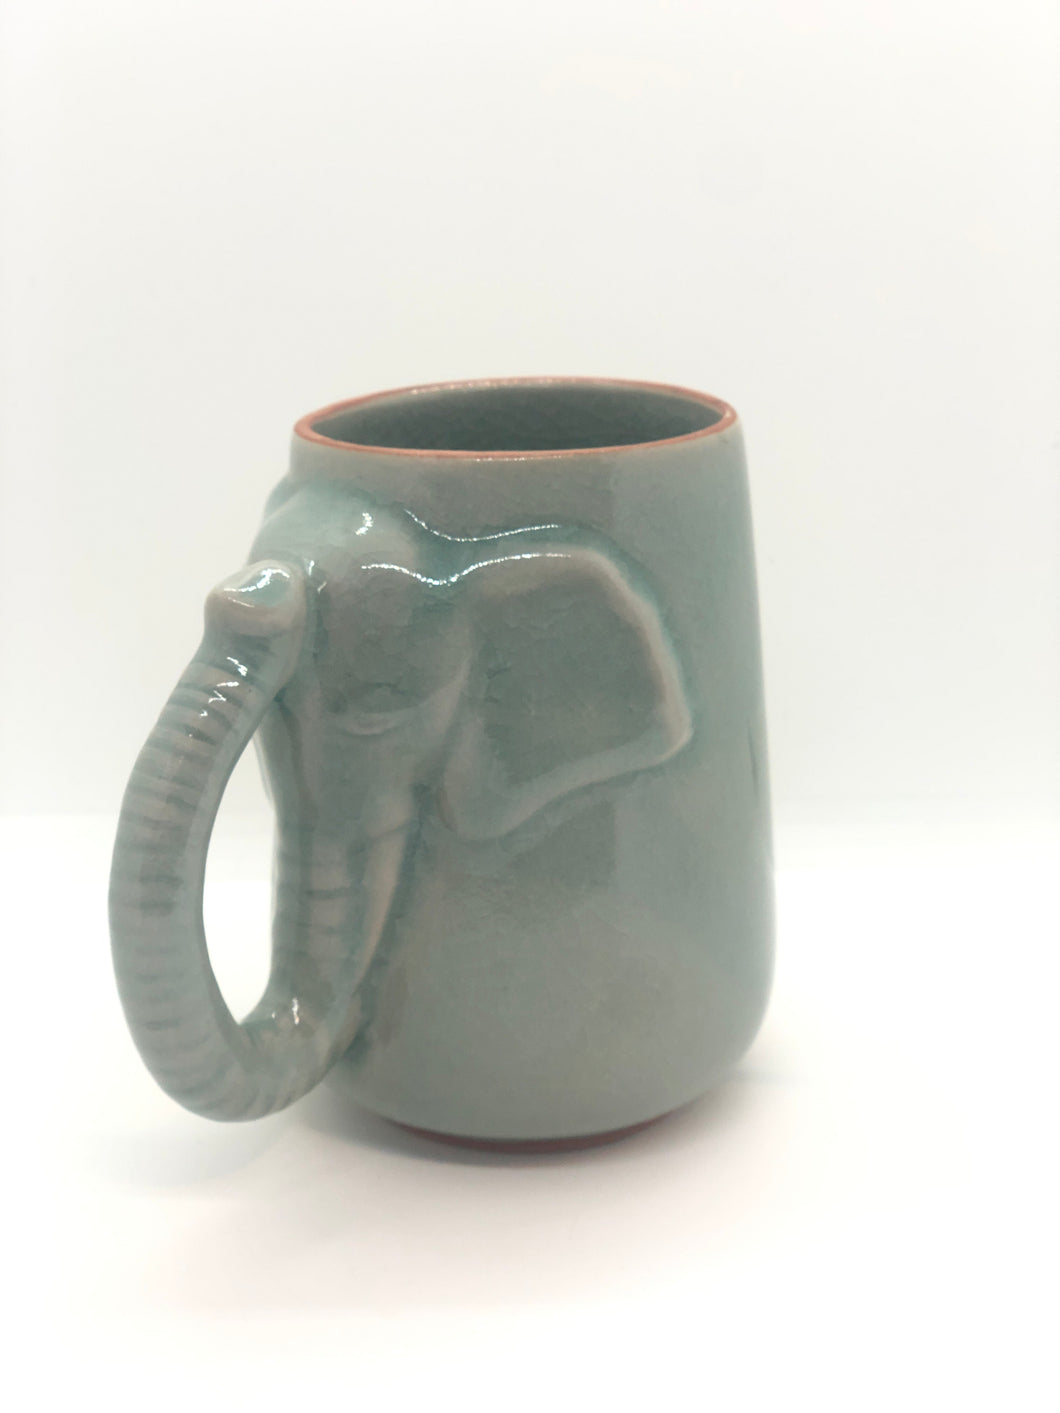 SOLD | Light Green Elephant Shaped Mug, Glossy Cracked Pattern, Rough Rim, Handmade